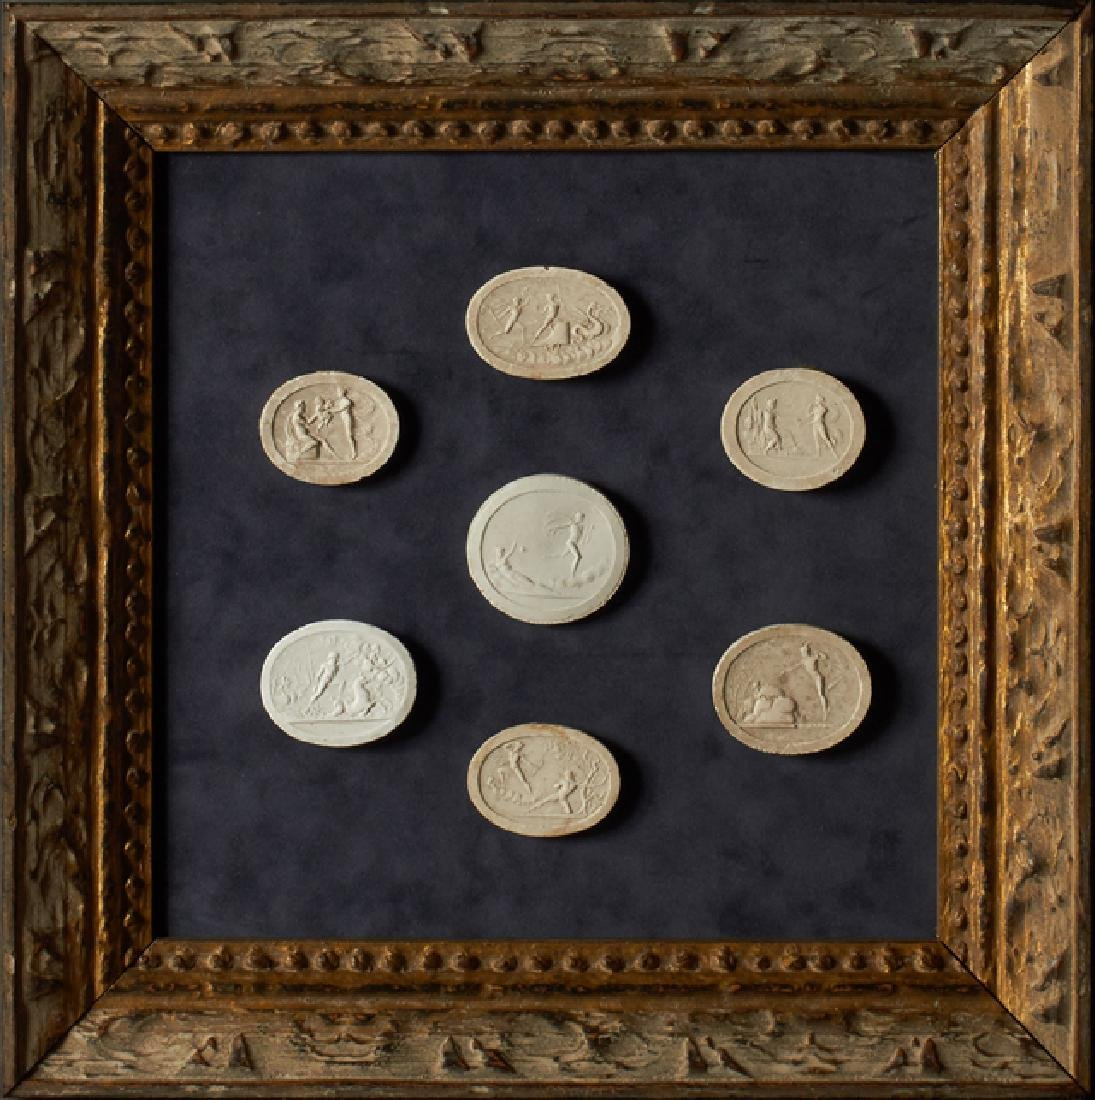 Group of Seven Plaster Intaglios, 19th c., Grand Tour